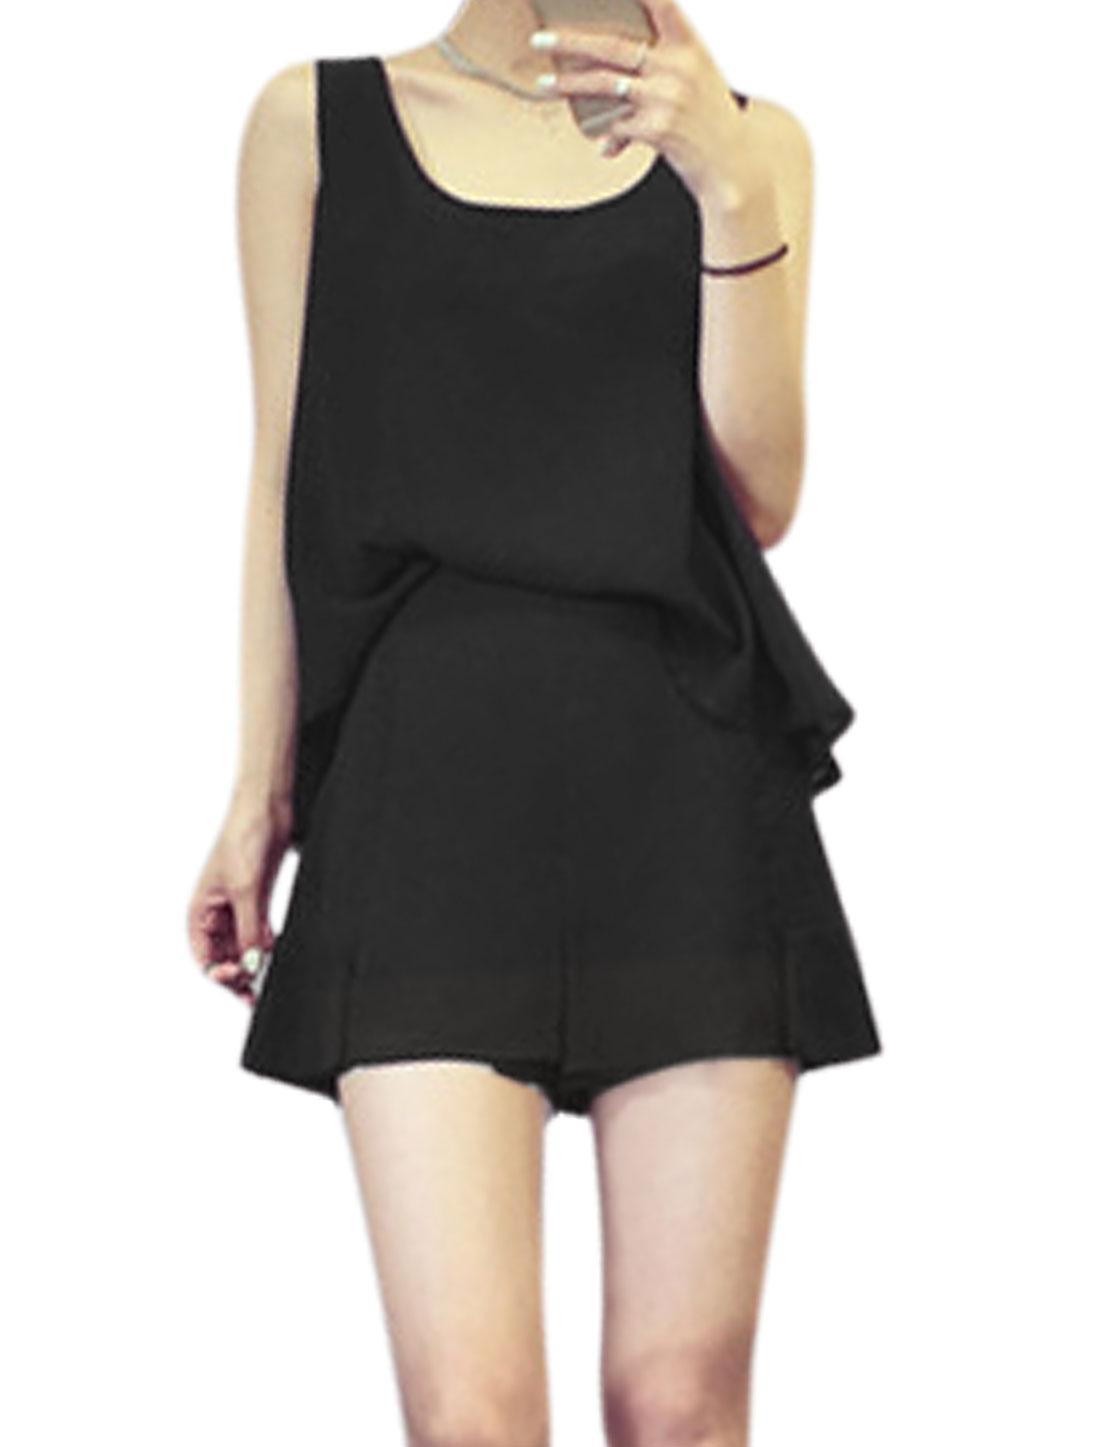 Ladies Scoop Neck Casual Tops w Elastic Waist Chiffon Shorts Sets Black XS